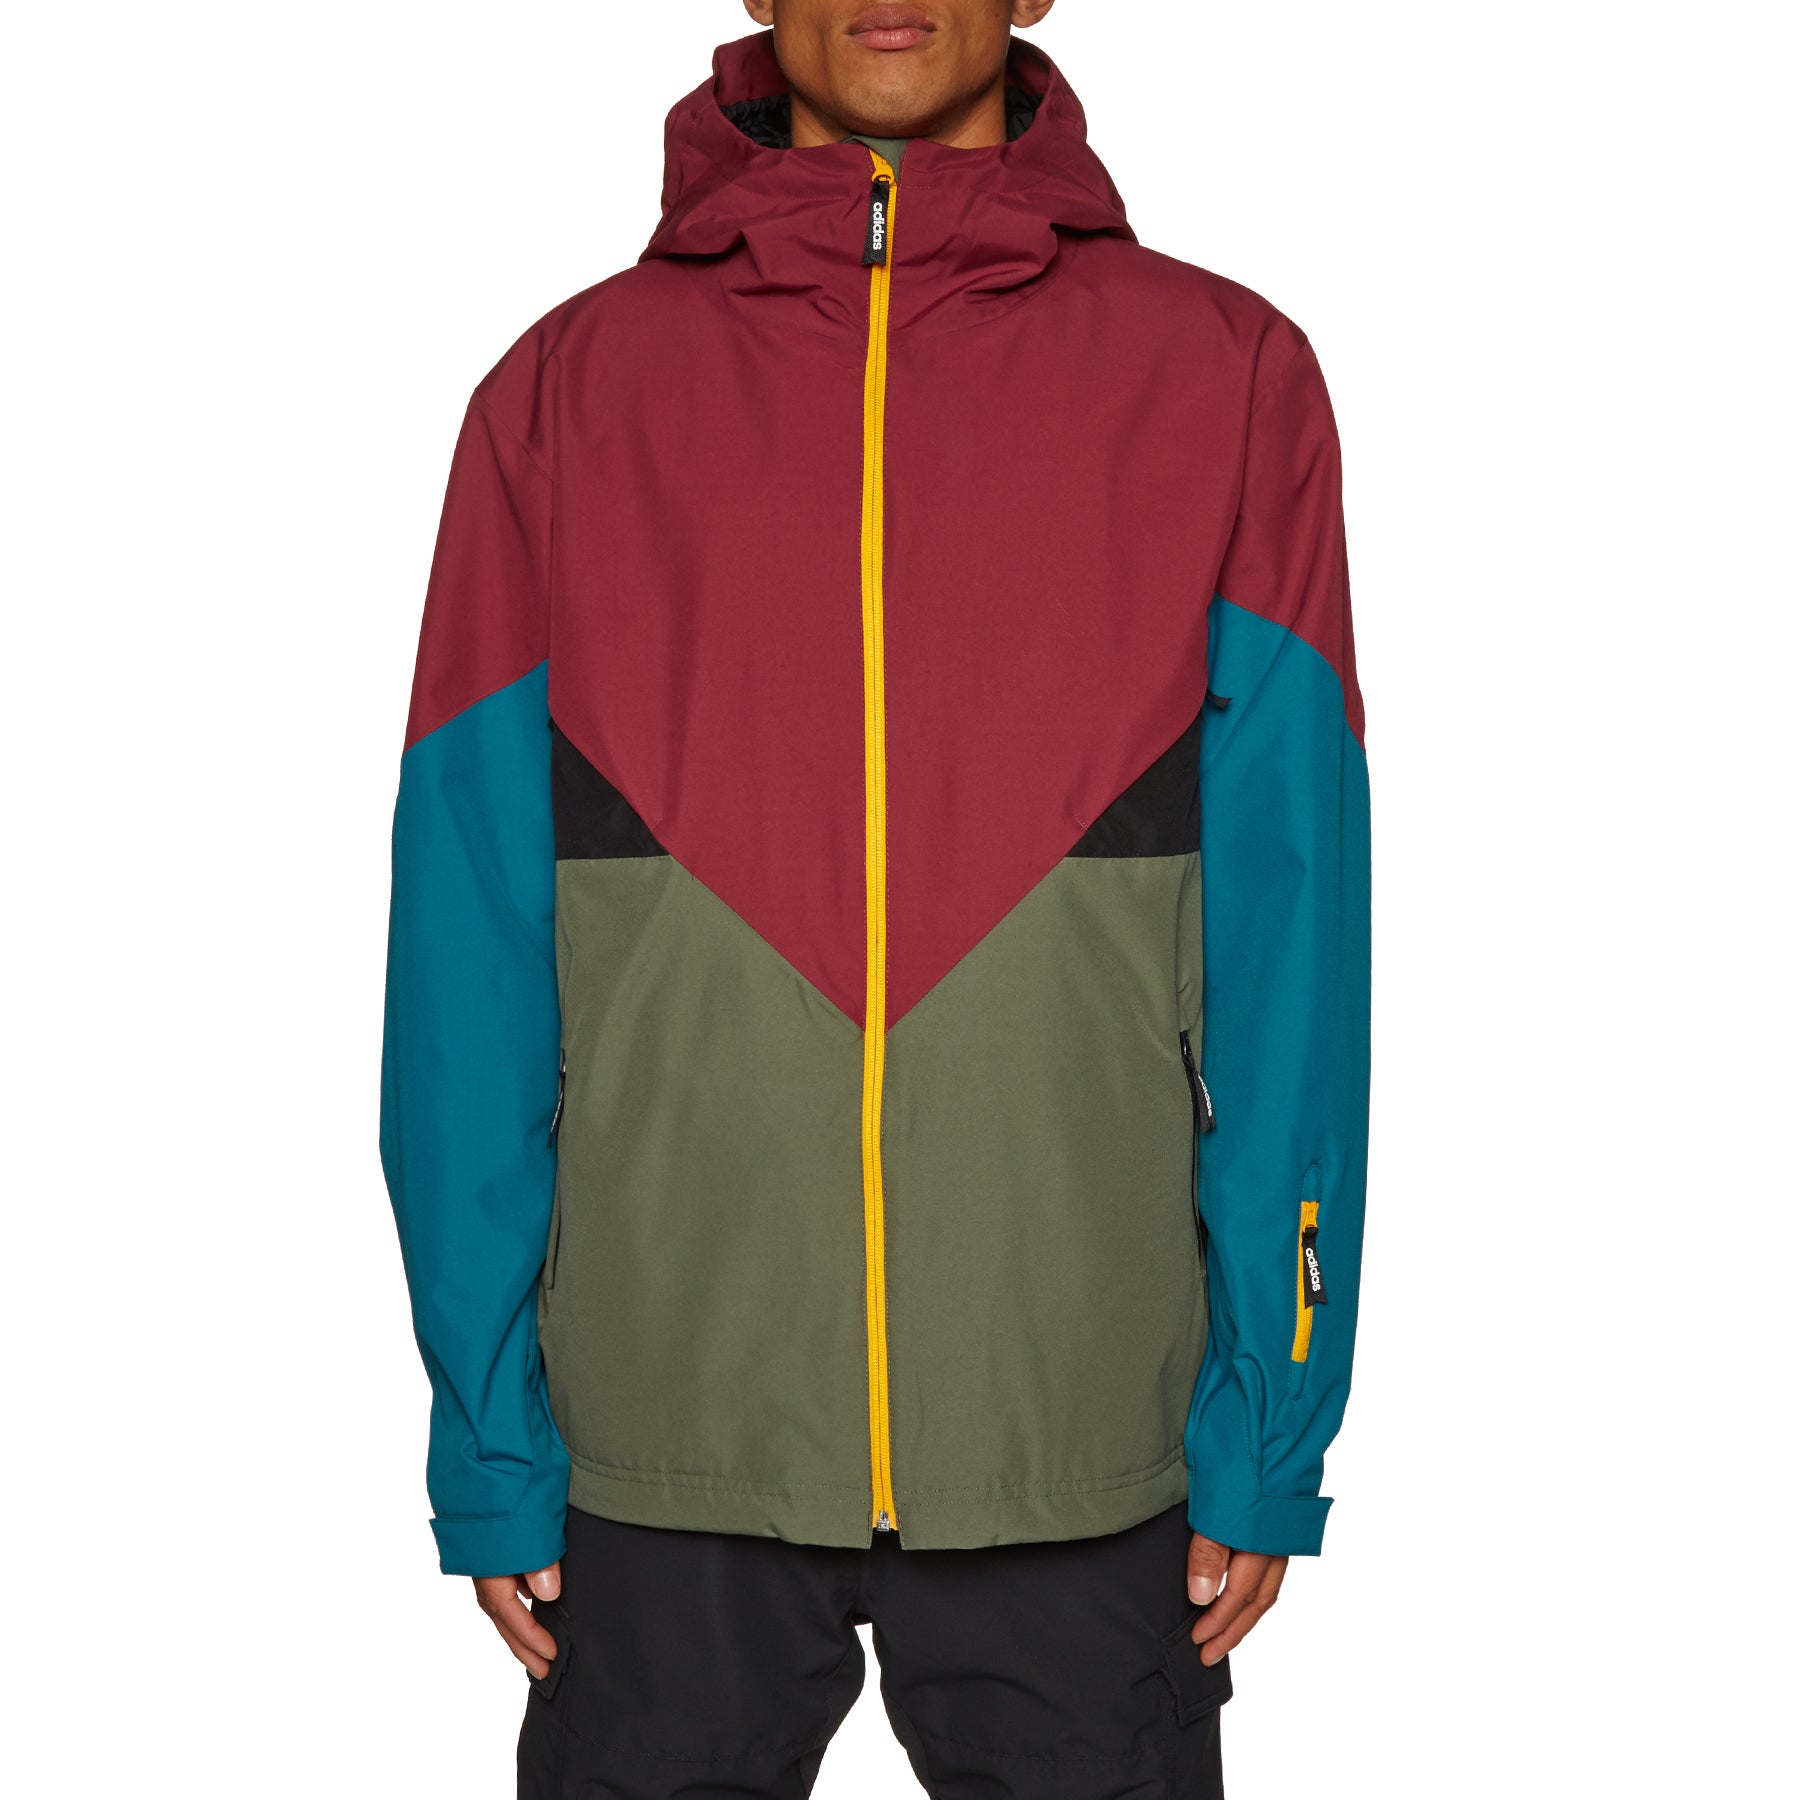 Adidas Snowboarding Premiere Riding Snow Jacket - Base Green Noble Maroon Real Teal Collegiate Gold